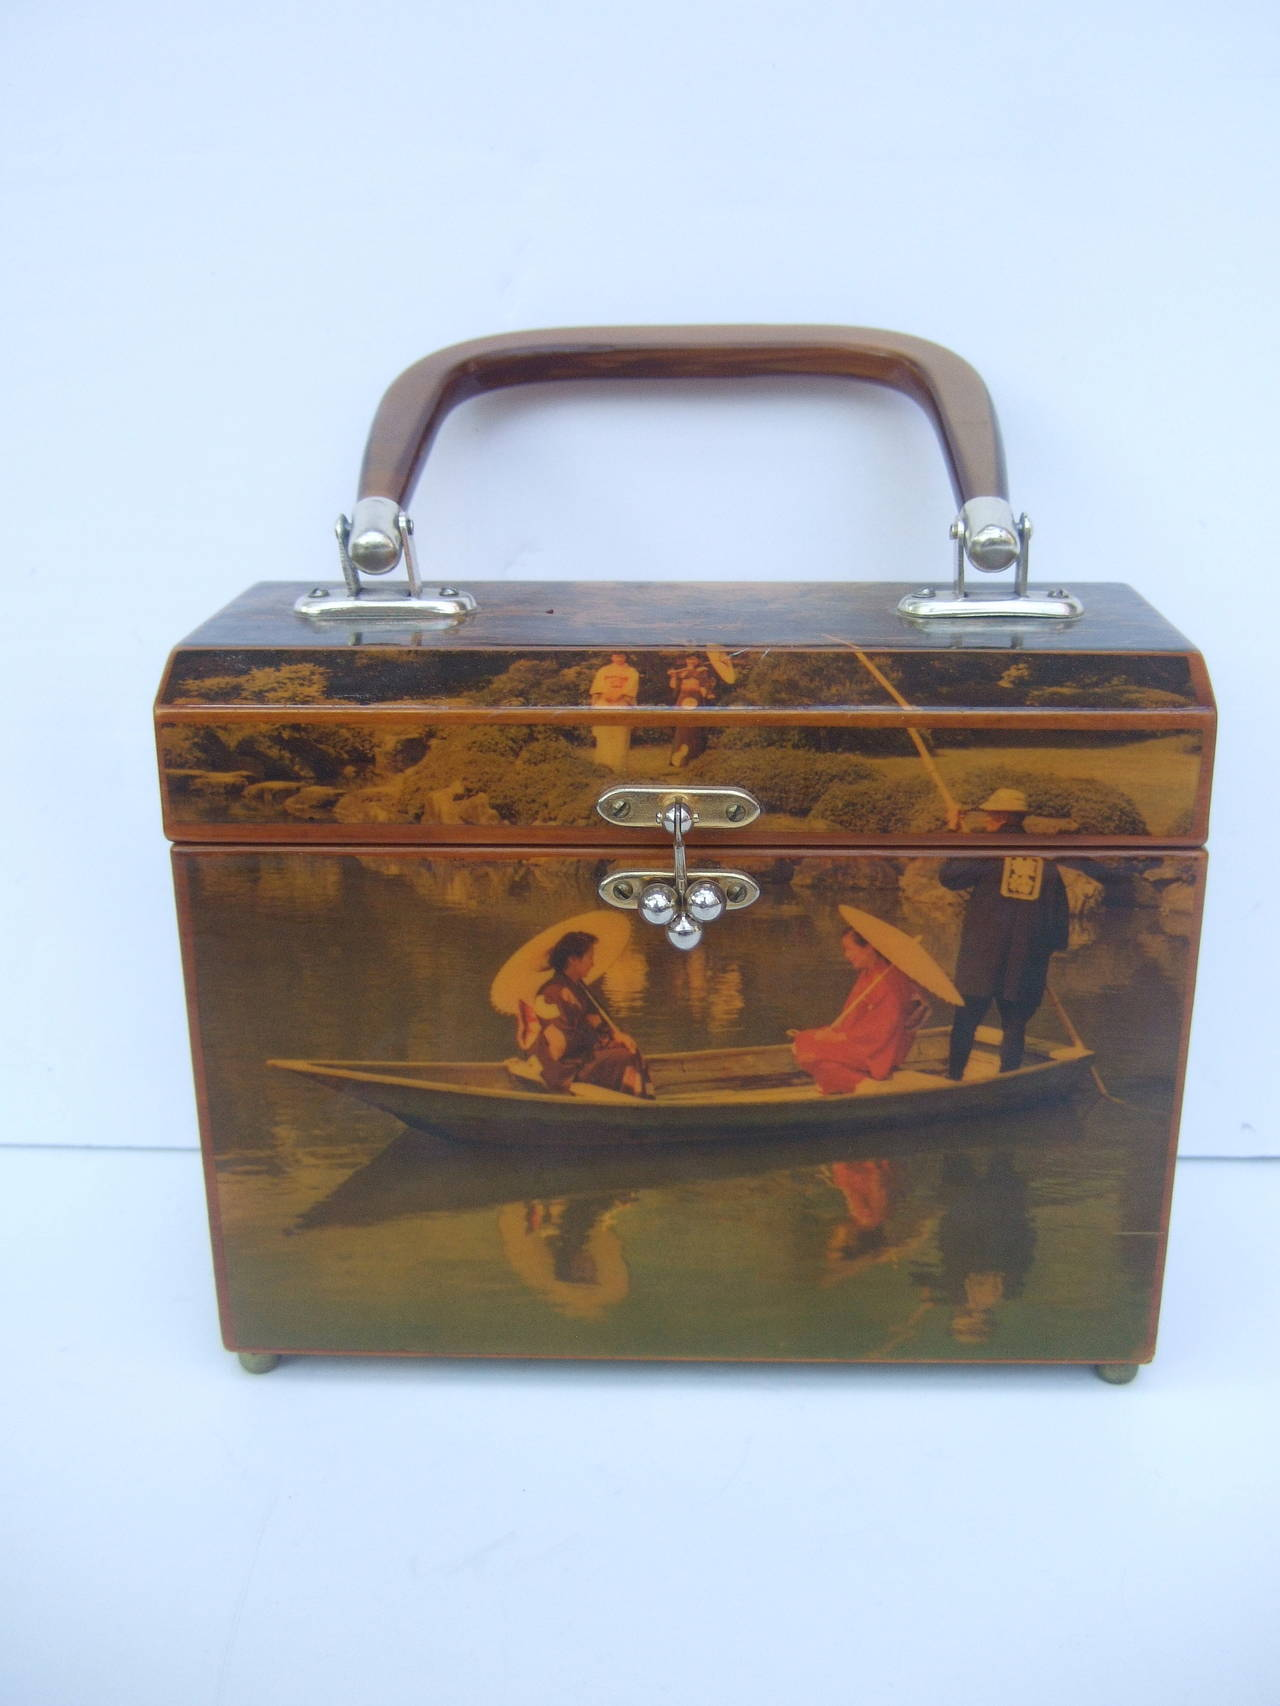 1970s Japanese inspired decoupage Geisha women handbag The unique wood box shaped handbag is illustrated with a pair  of Geisha women floating in a boat. Their reflections are captured in the rippling water   The lid cover is illustrated with